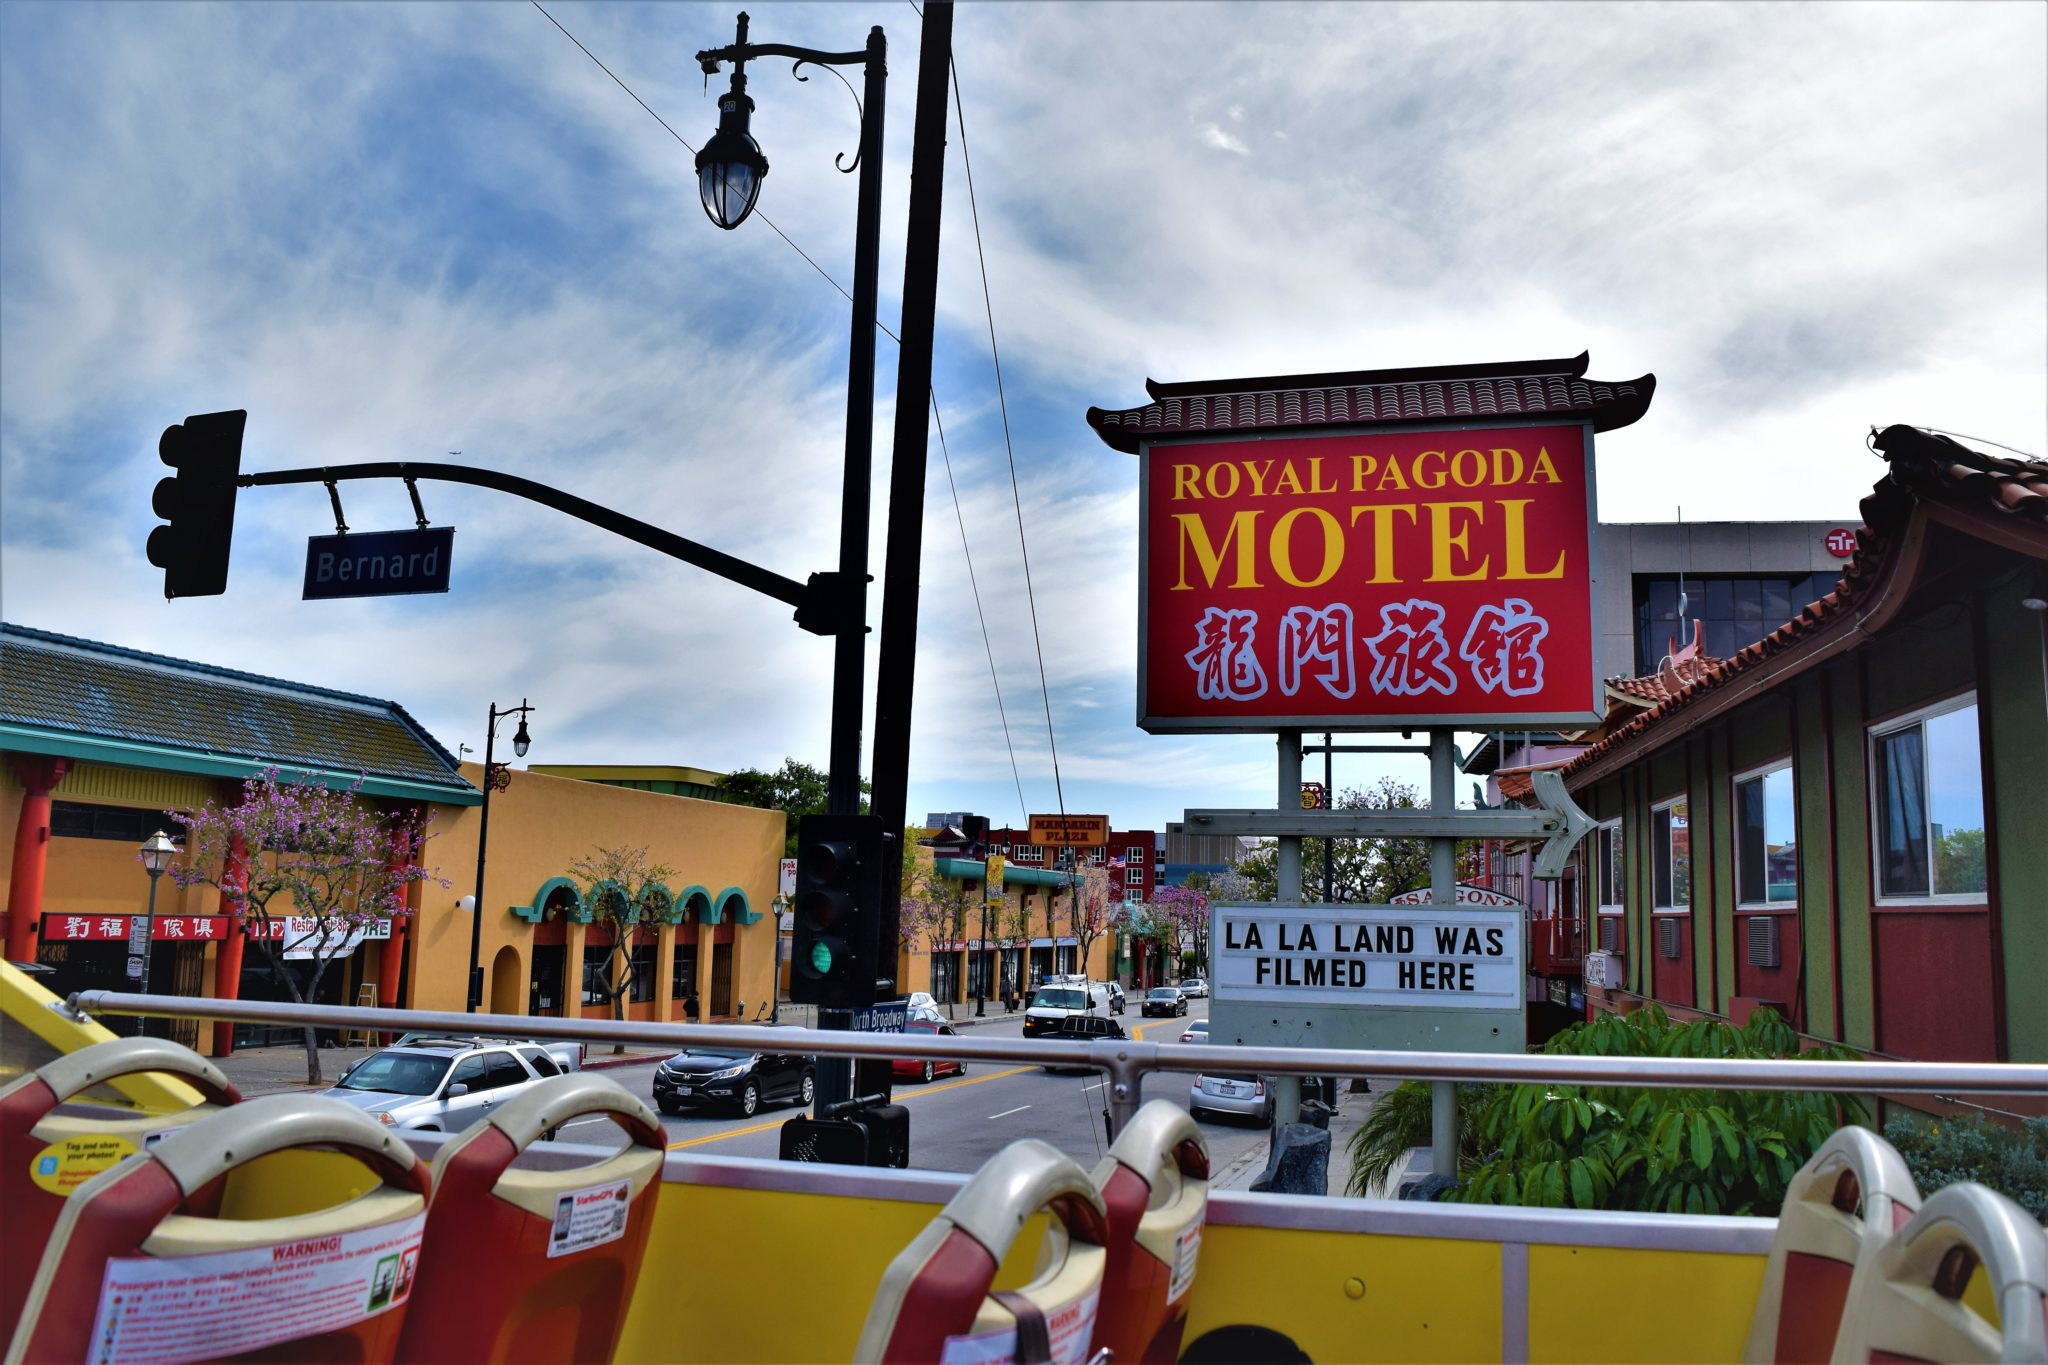 Royal Pagoda Motel, chinatown, hop on hop off bus los angeles